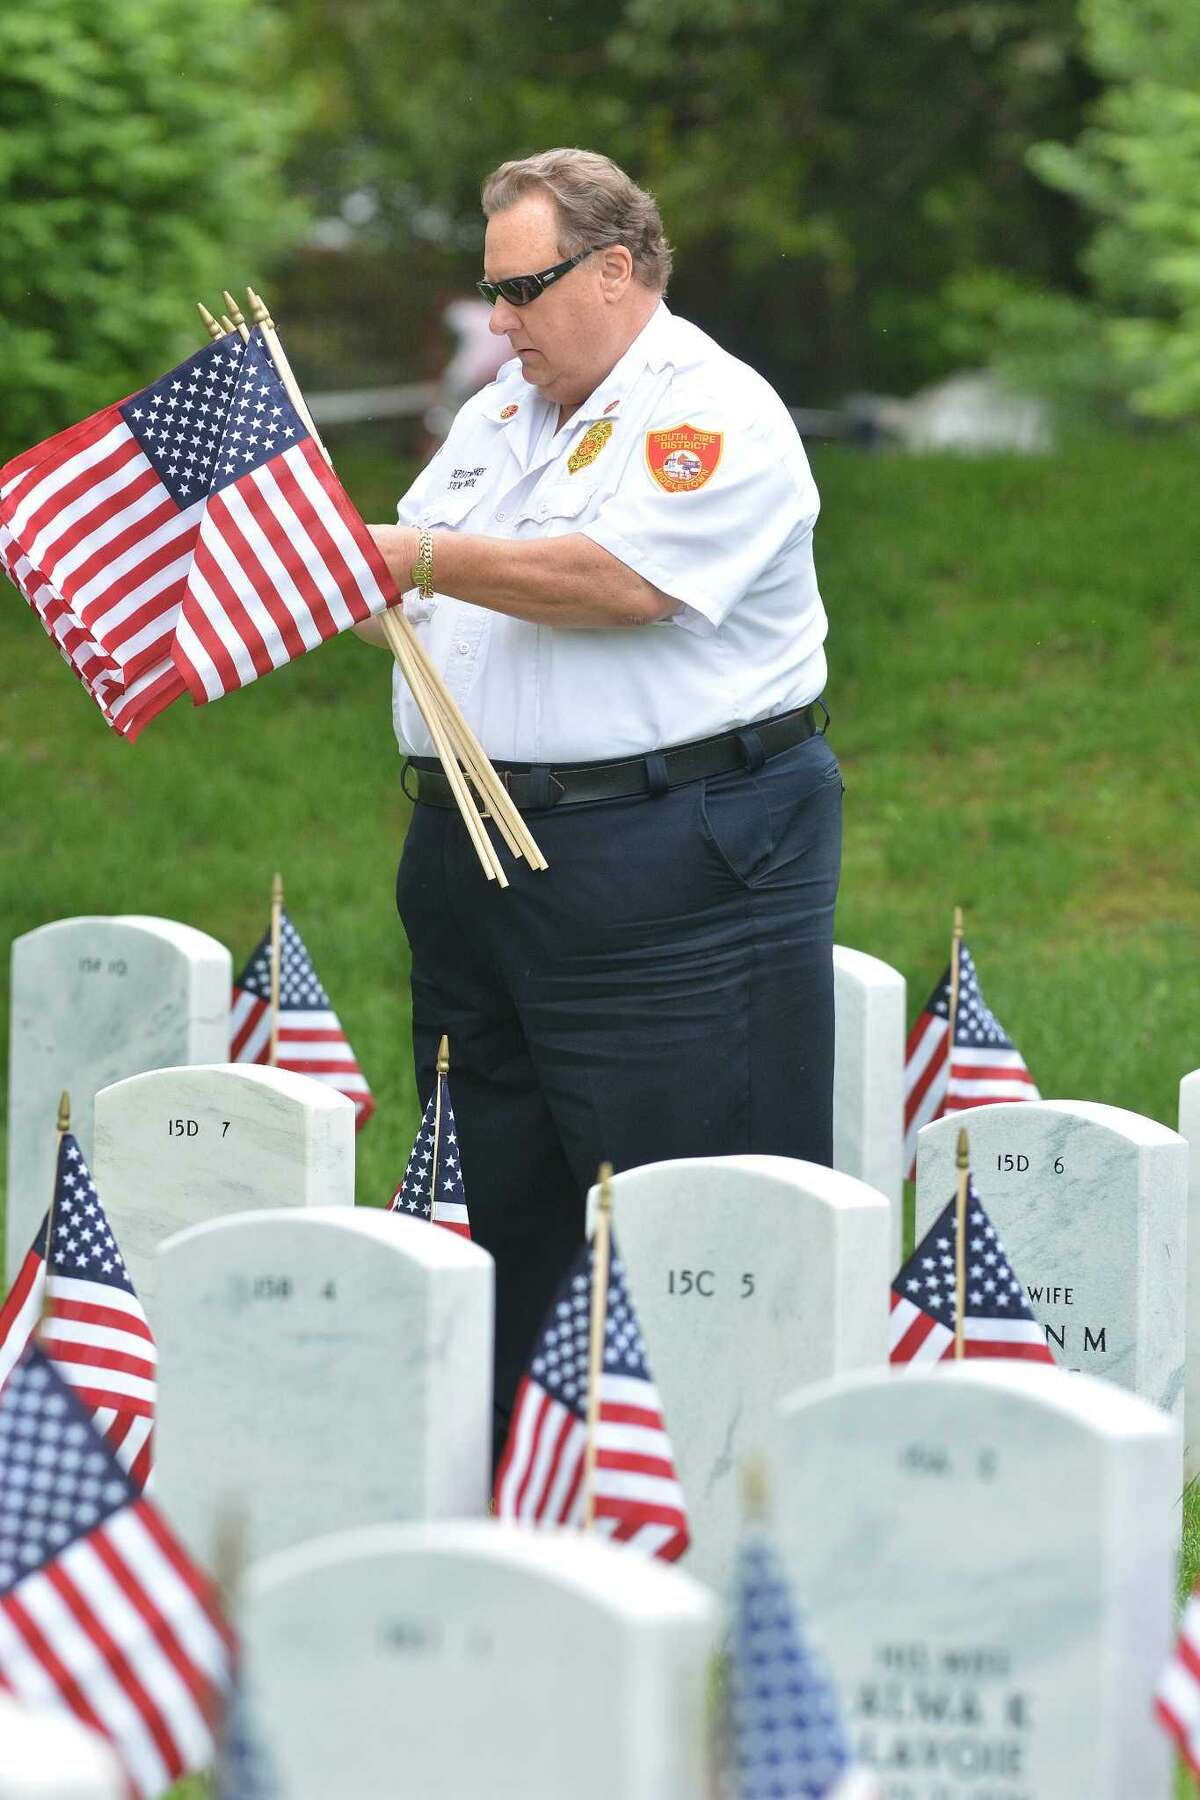 Deputy Chief and Fire Marshal Steven Krol joined of the South Fire District to help local veterans place American Flags at over 6,000 headstones at the Connecticut State Veterans Cemetery at 317 Bow Lane in Middletown on May 23, 2014.